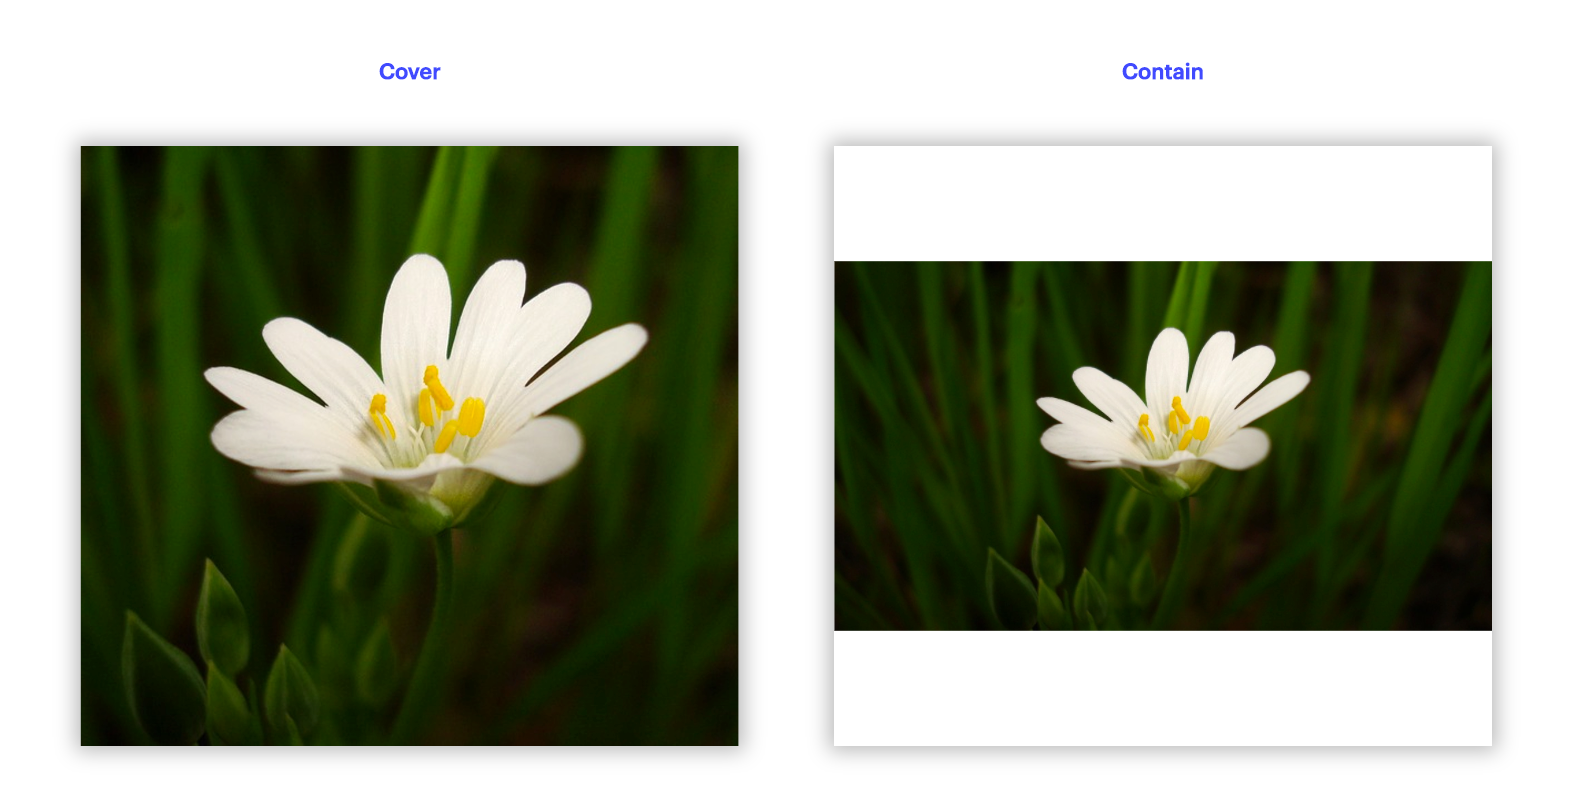 Webflow Background images - cover vs contain